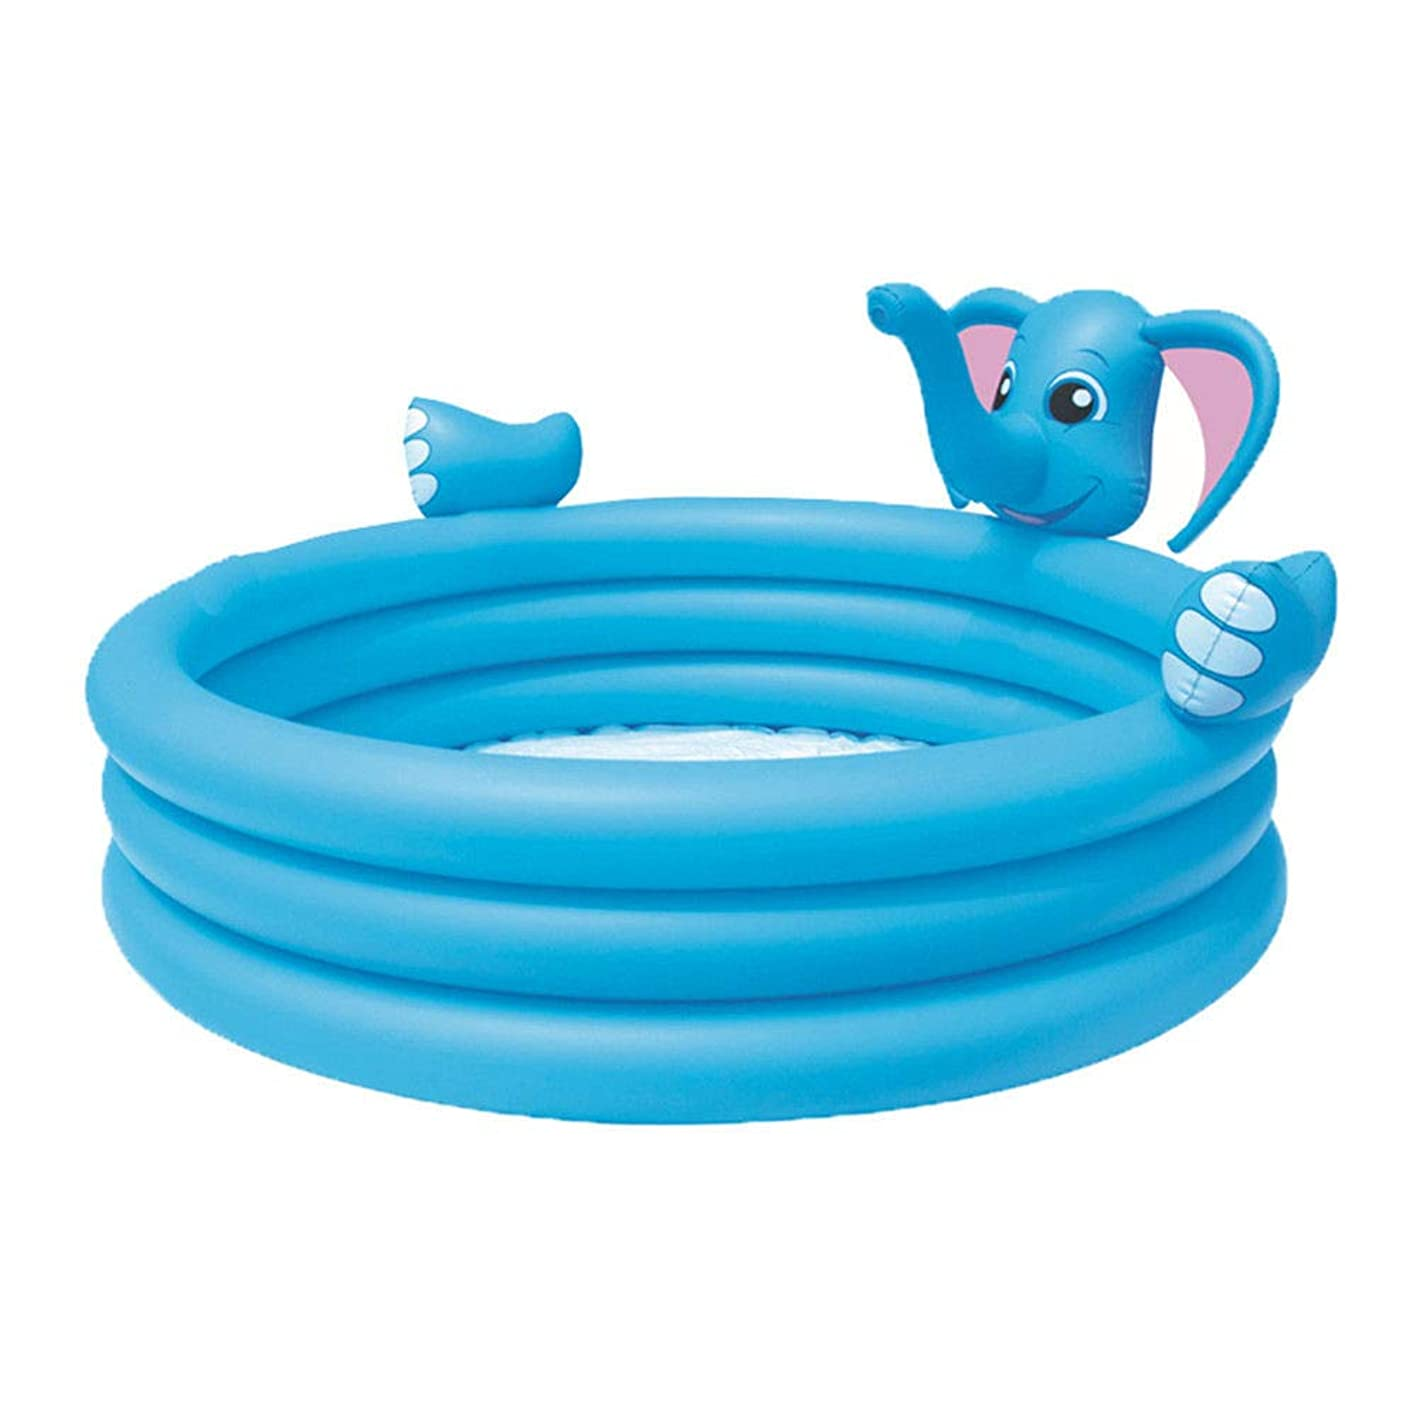 HEROTIGH Inflatable Pool Tub Play Baby Elephant Three Rings Water Spray Pool Baby Inflatable Children 152x152x74cm nmjivzakrmq690